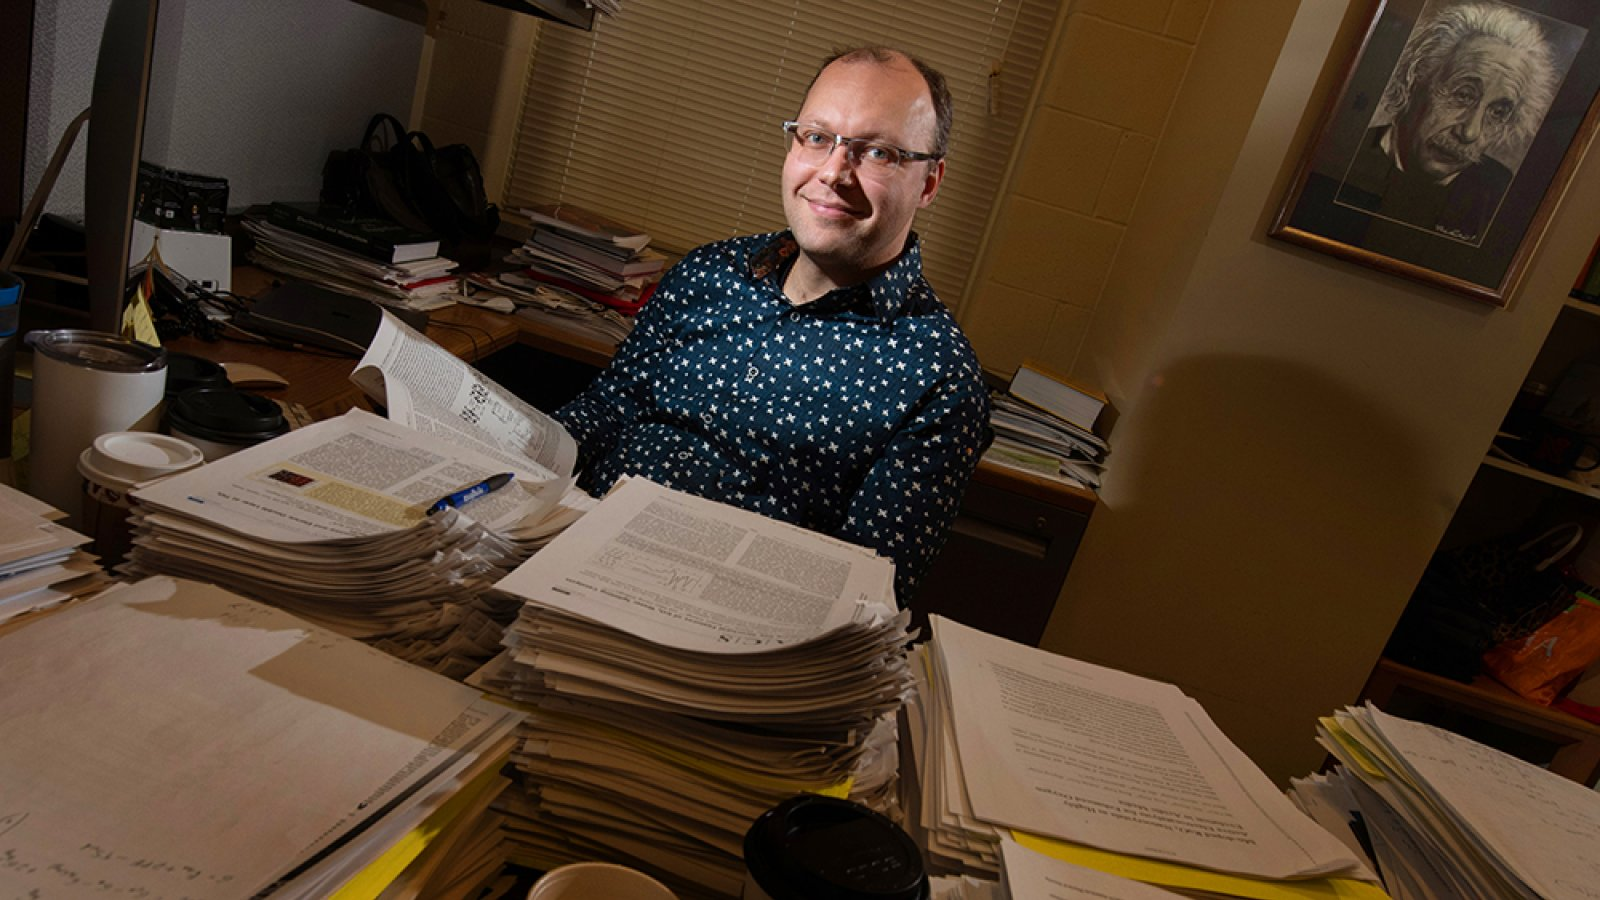 Vitaly Alexandrov, assistant professor of chemical and biomolecular engineering at Nebraska, has received a $520,244 Early Career Development Program award from the National Science Foundation to advance basic understanding of how nanocrystals dissolve in aqueous environments. (University Communication photo)